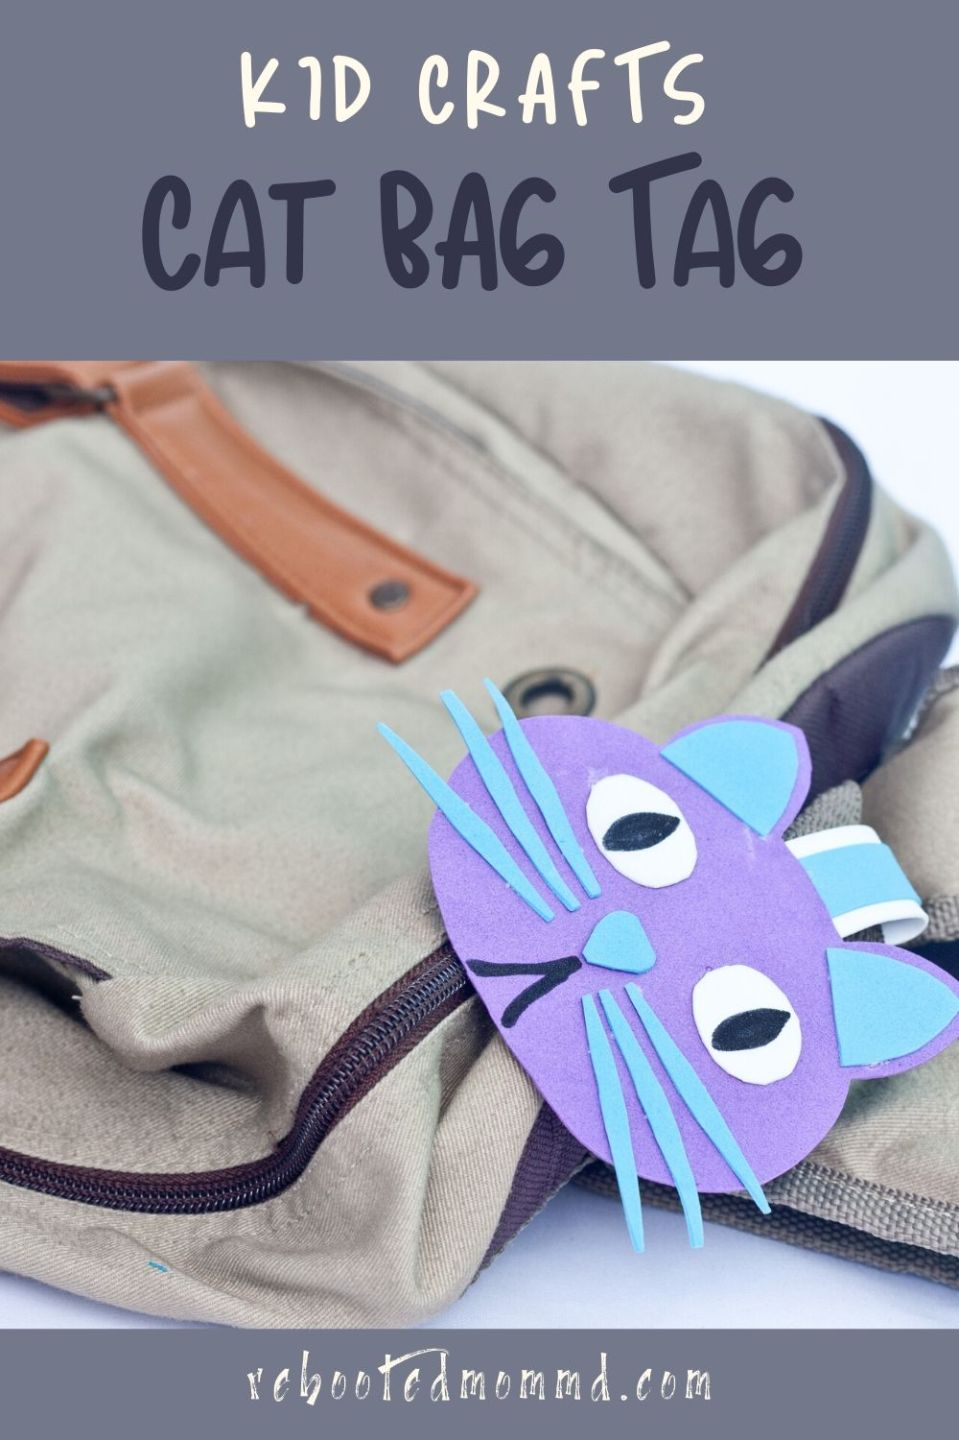 Kids Activities: Make a Cute Cat Bag Tag